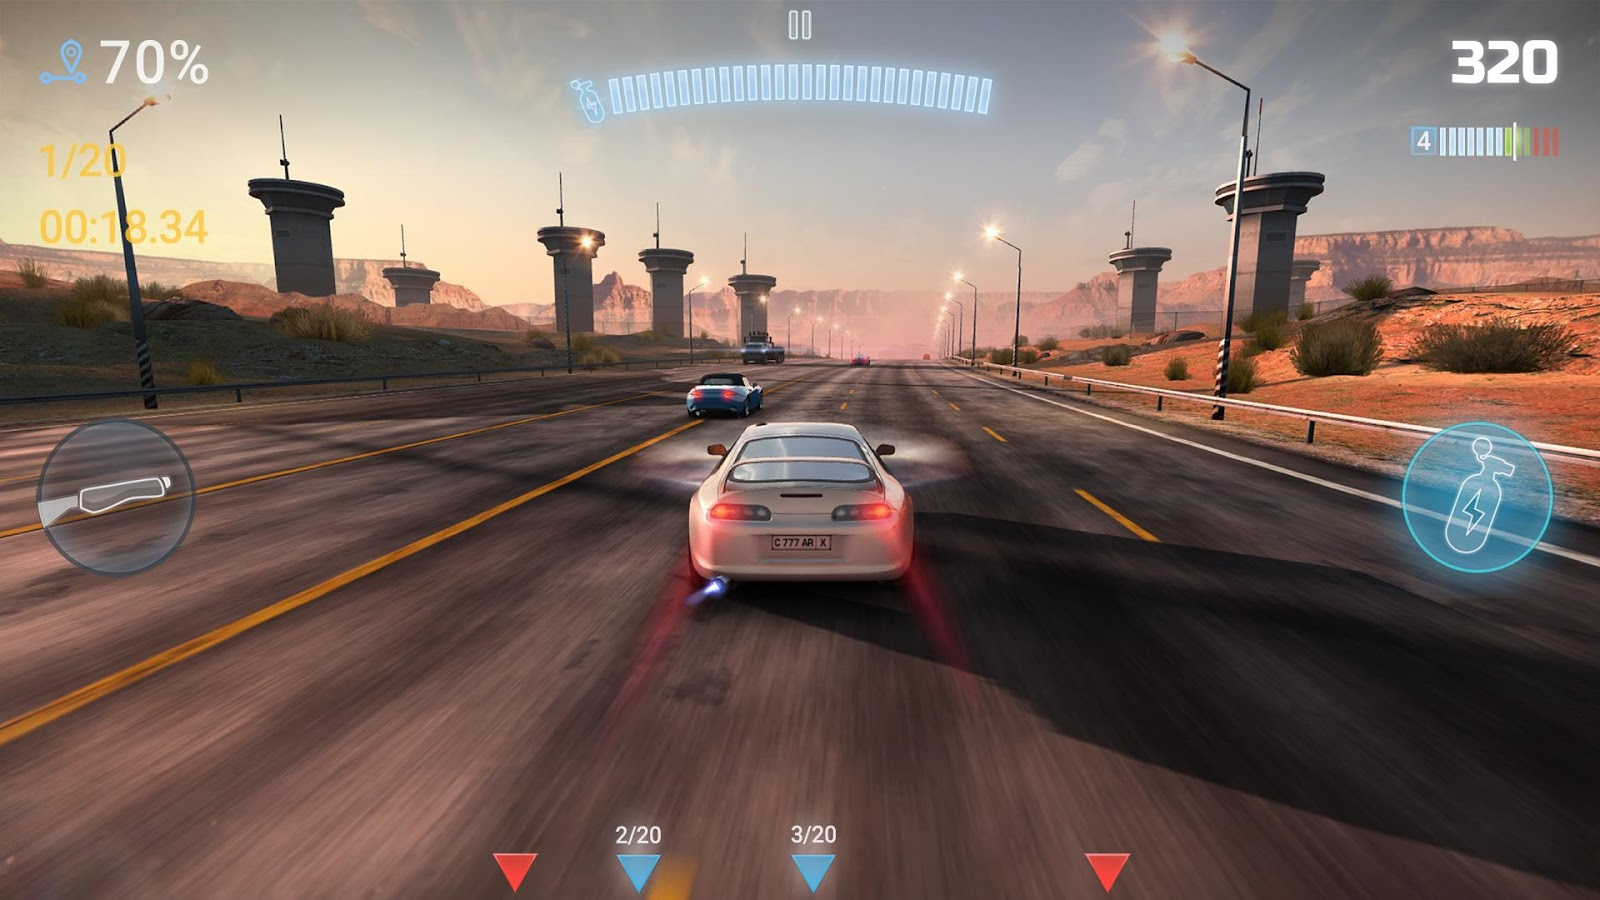 Carx highway racing android apps on google play for Mobilia highway 7